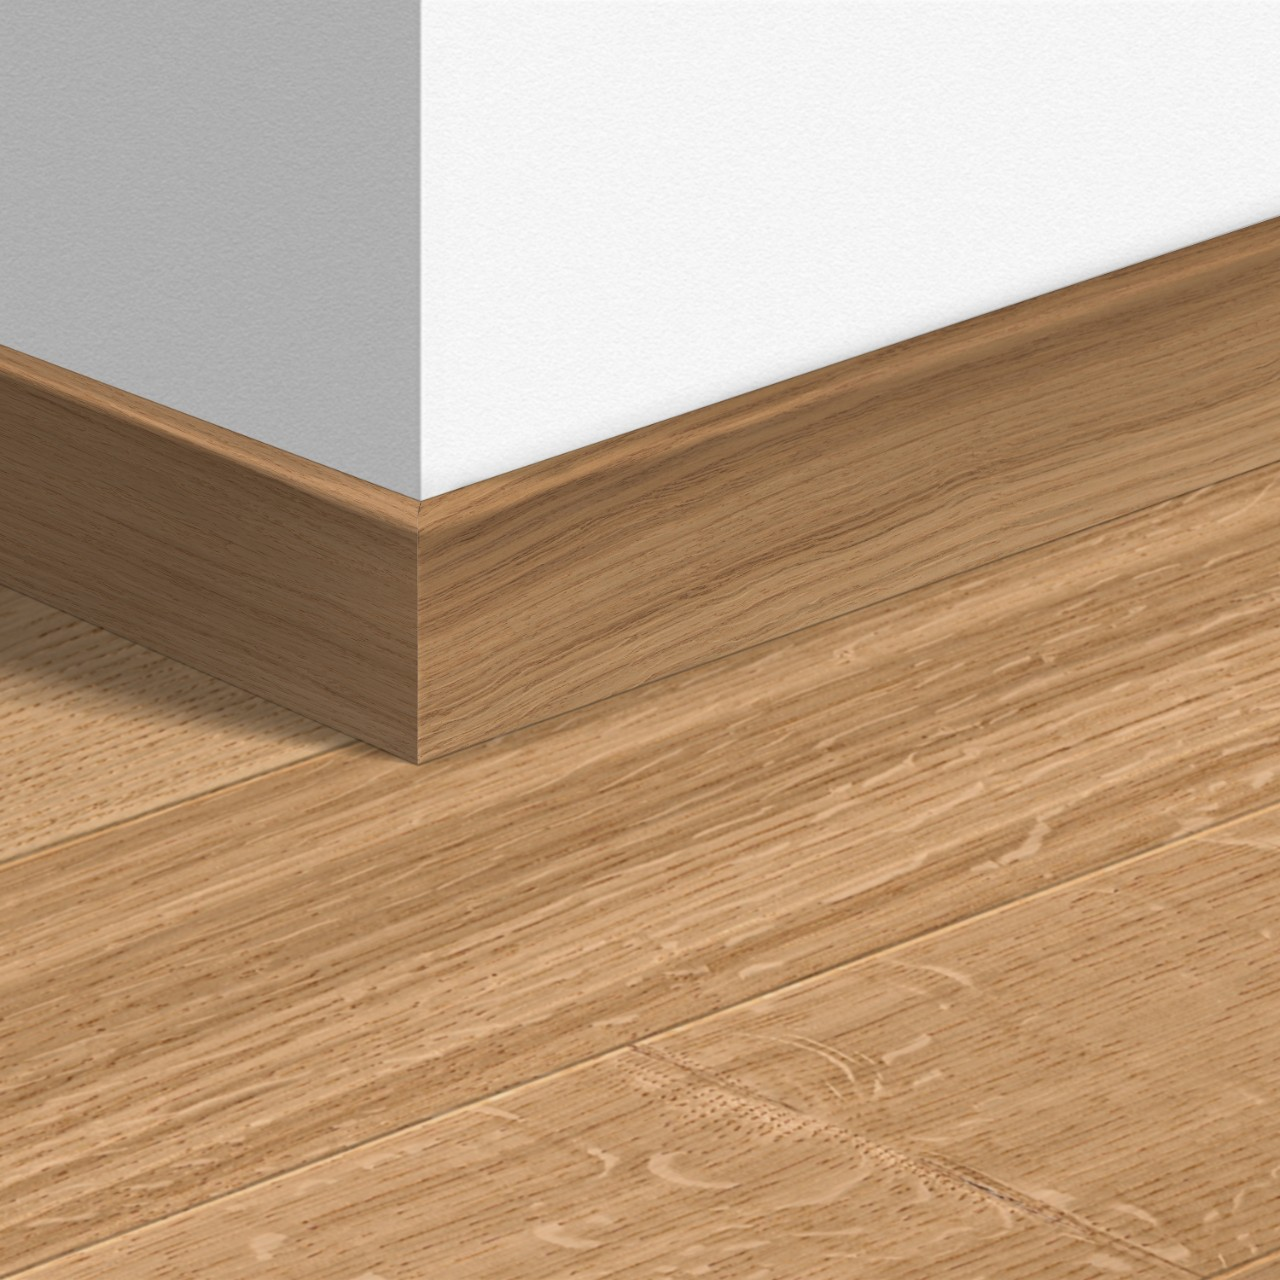 QSWPPSKR Parquet Accessories Parquet Skirting Board (matching colour) QSWPPSKR01334